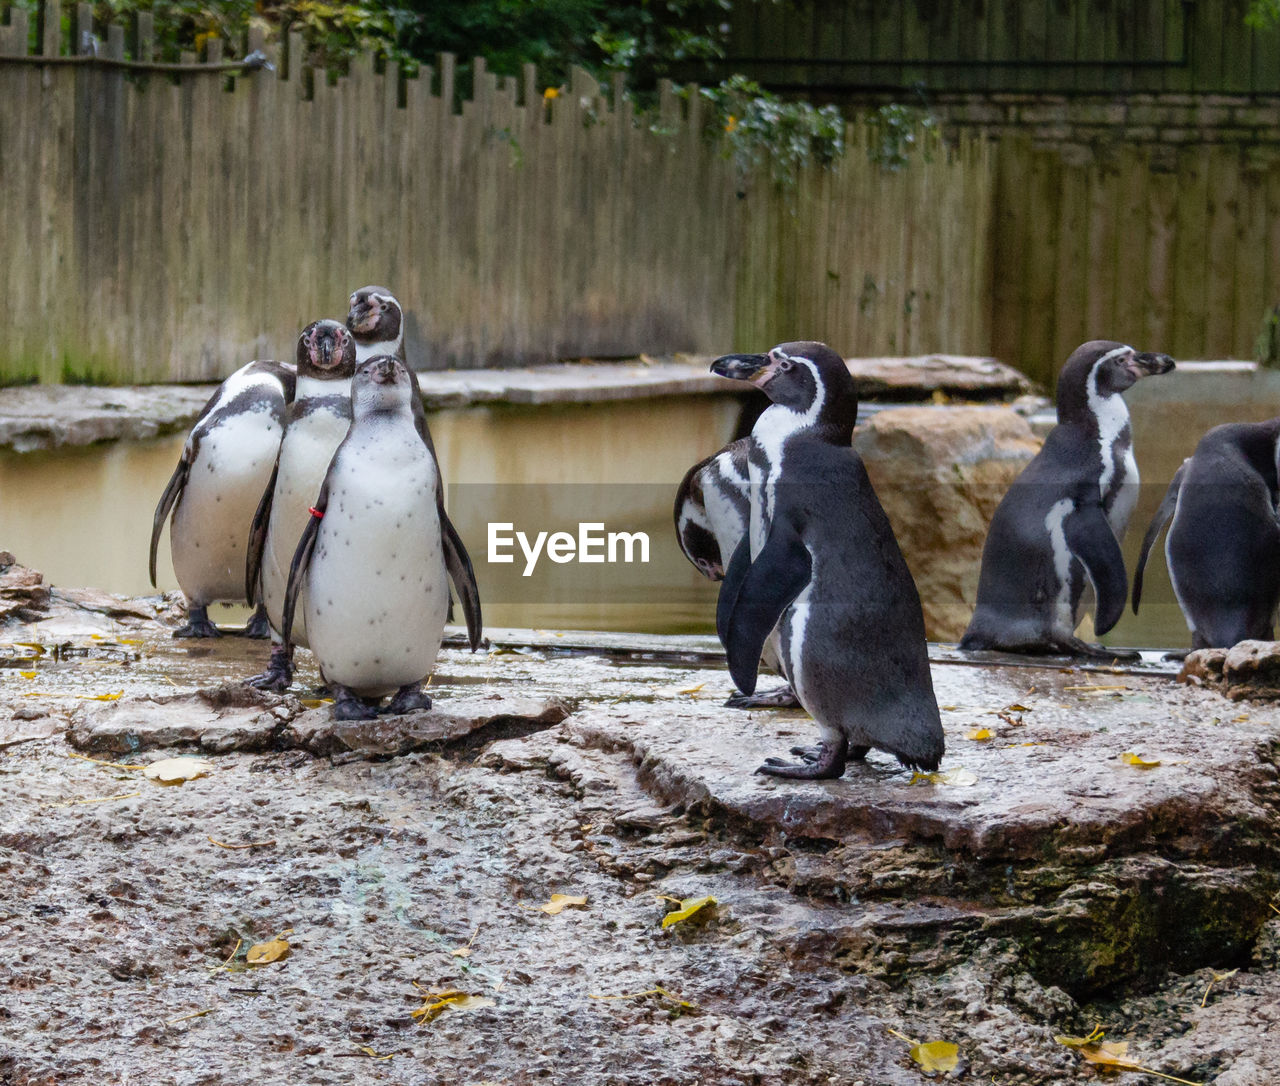 group of animals, animal, animal themes, animal wildlife, vertebrate, animals in the wild, bird, penguin, no people, day, nature, outdoors, land, focus on foreground, medium group of animals, water, solid, animals in captivity, wood - material, three animals